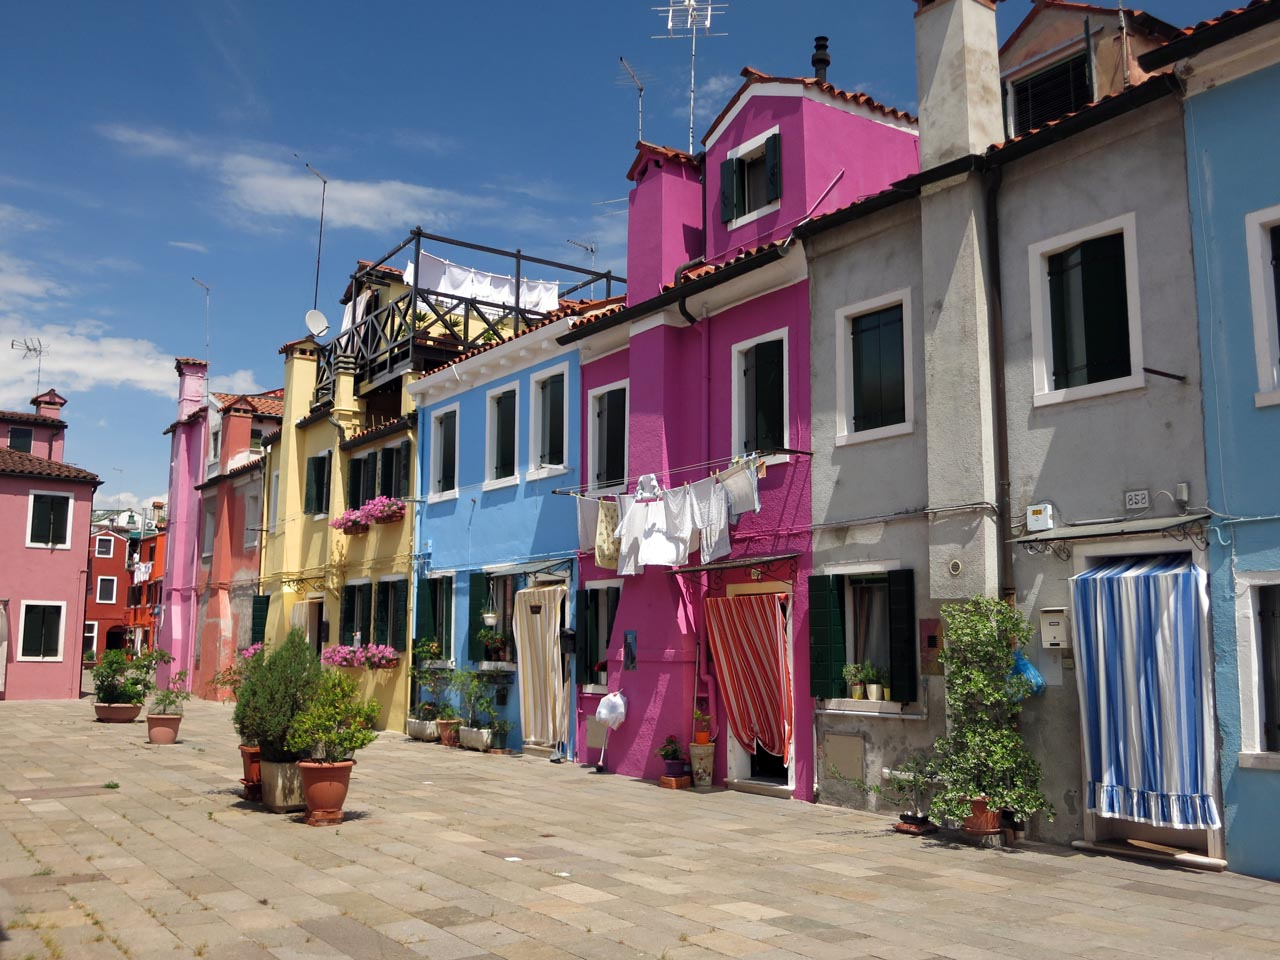 Colorful houses in campo (square) with clothes drying in Burano